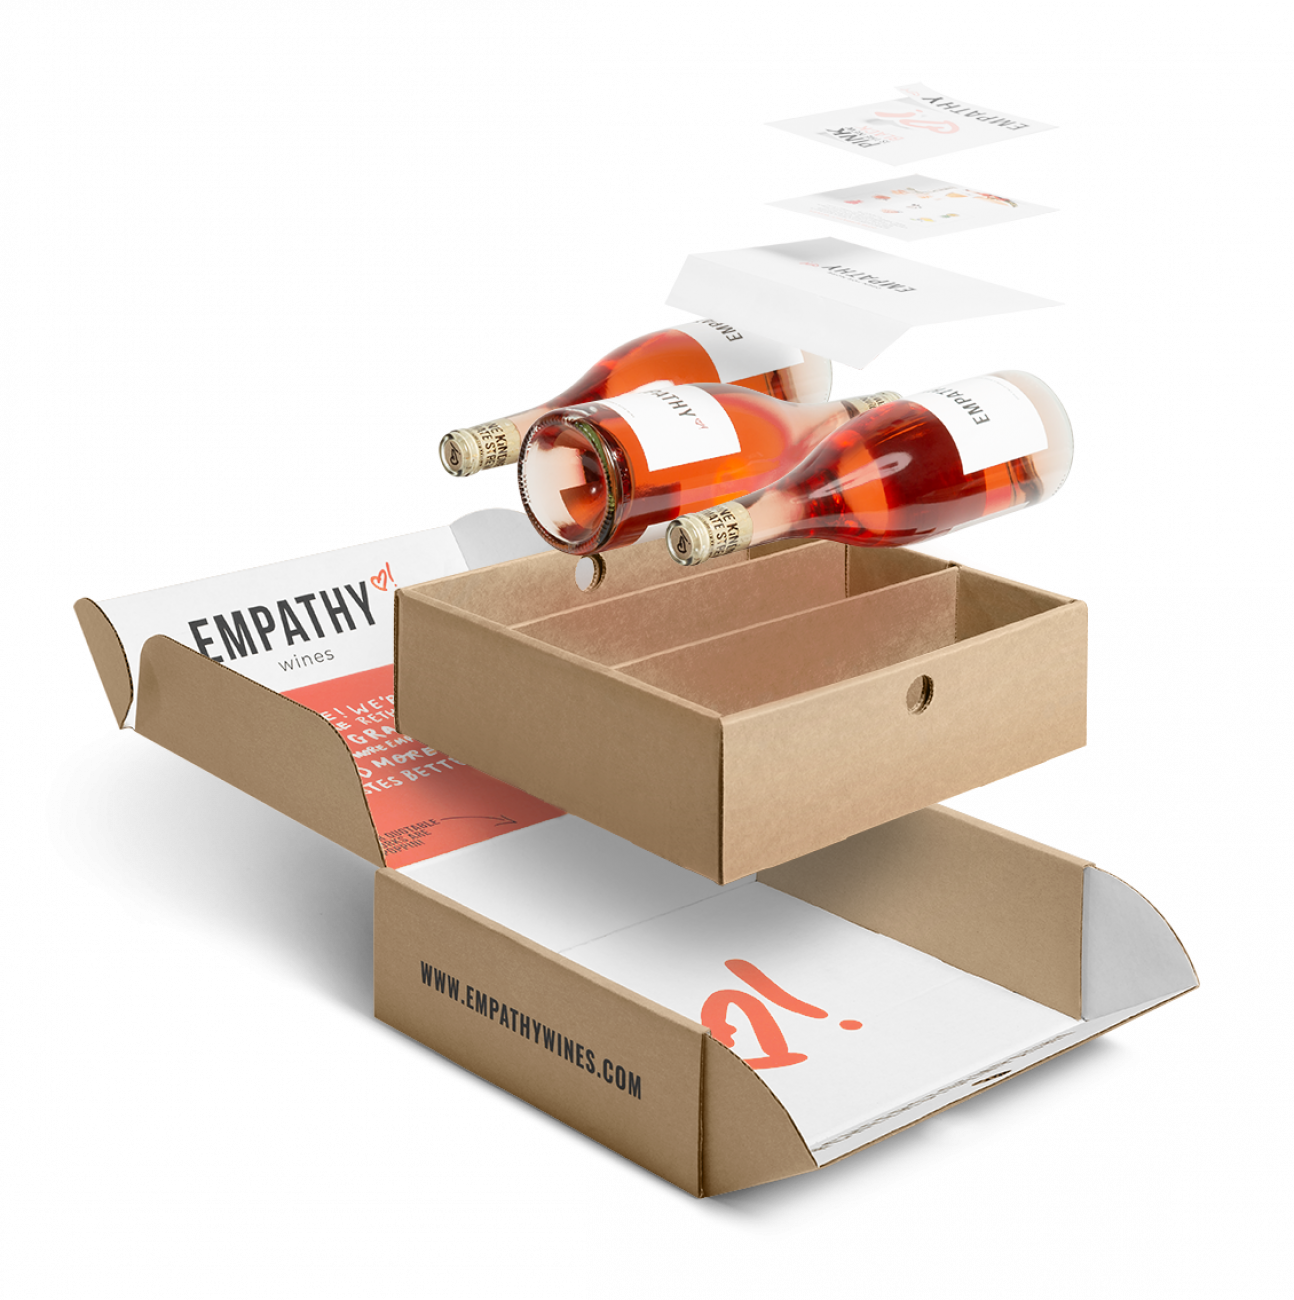 Empathy Wines Corrugated Mailer Boxes, Corrugated Inserts, Paper Envelopes, Flat Cards, Kiss Cut Sticker Sheets